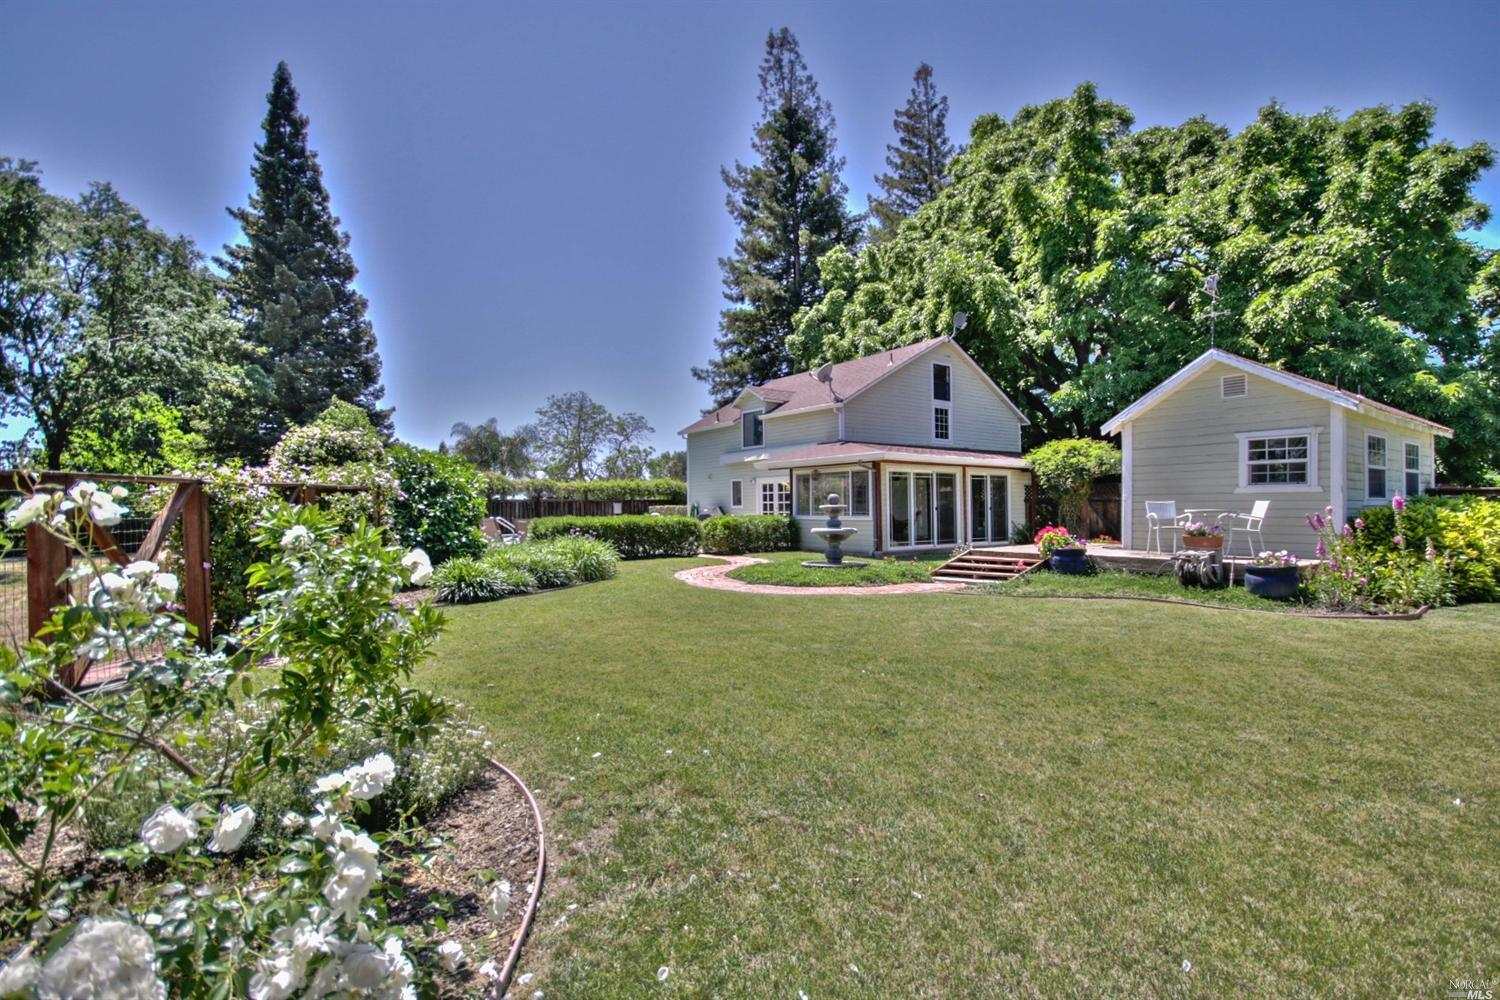 Solano County, Ca Country Home For Sale With Prime Farmland